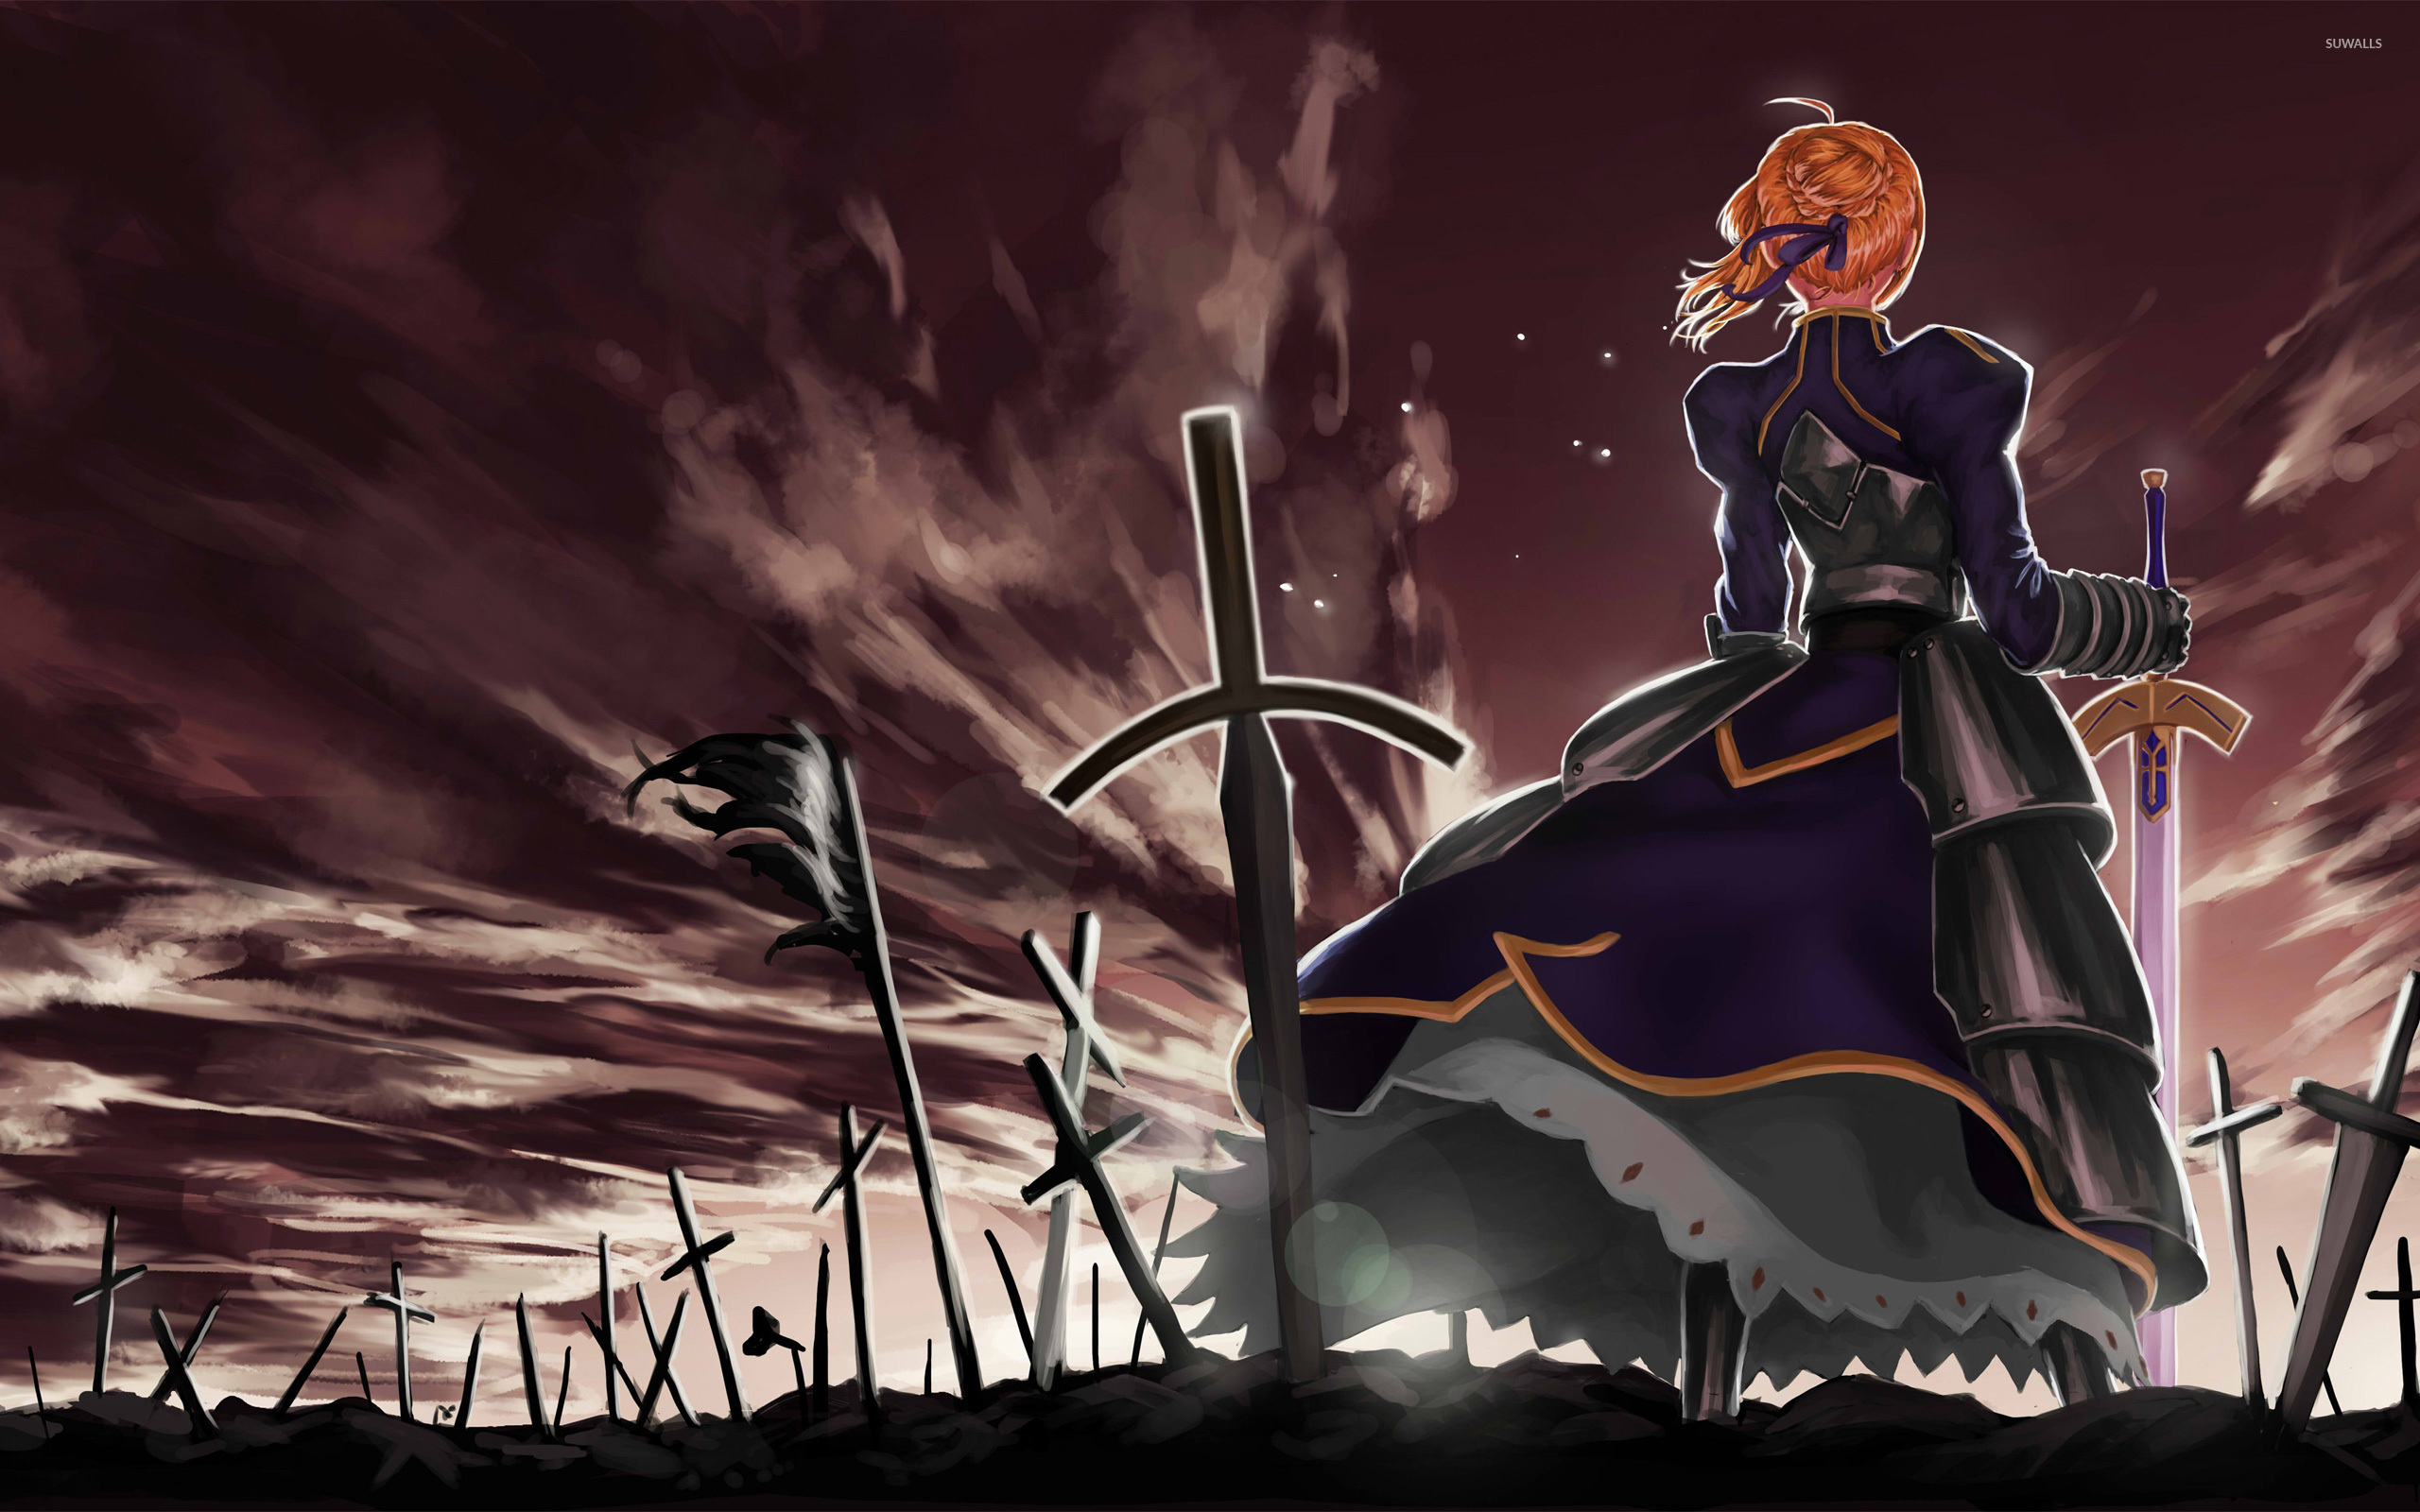 Fate Stay Night Wallpaper Anime Wallpapers 8411